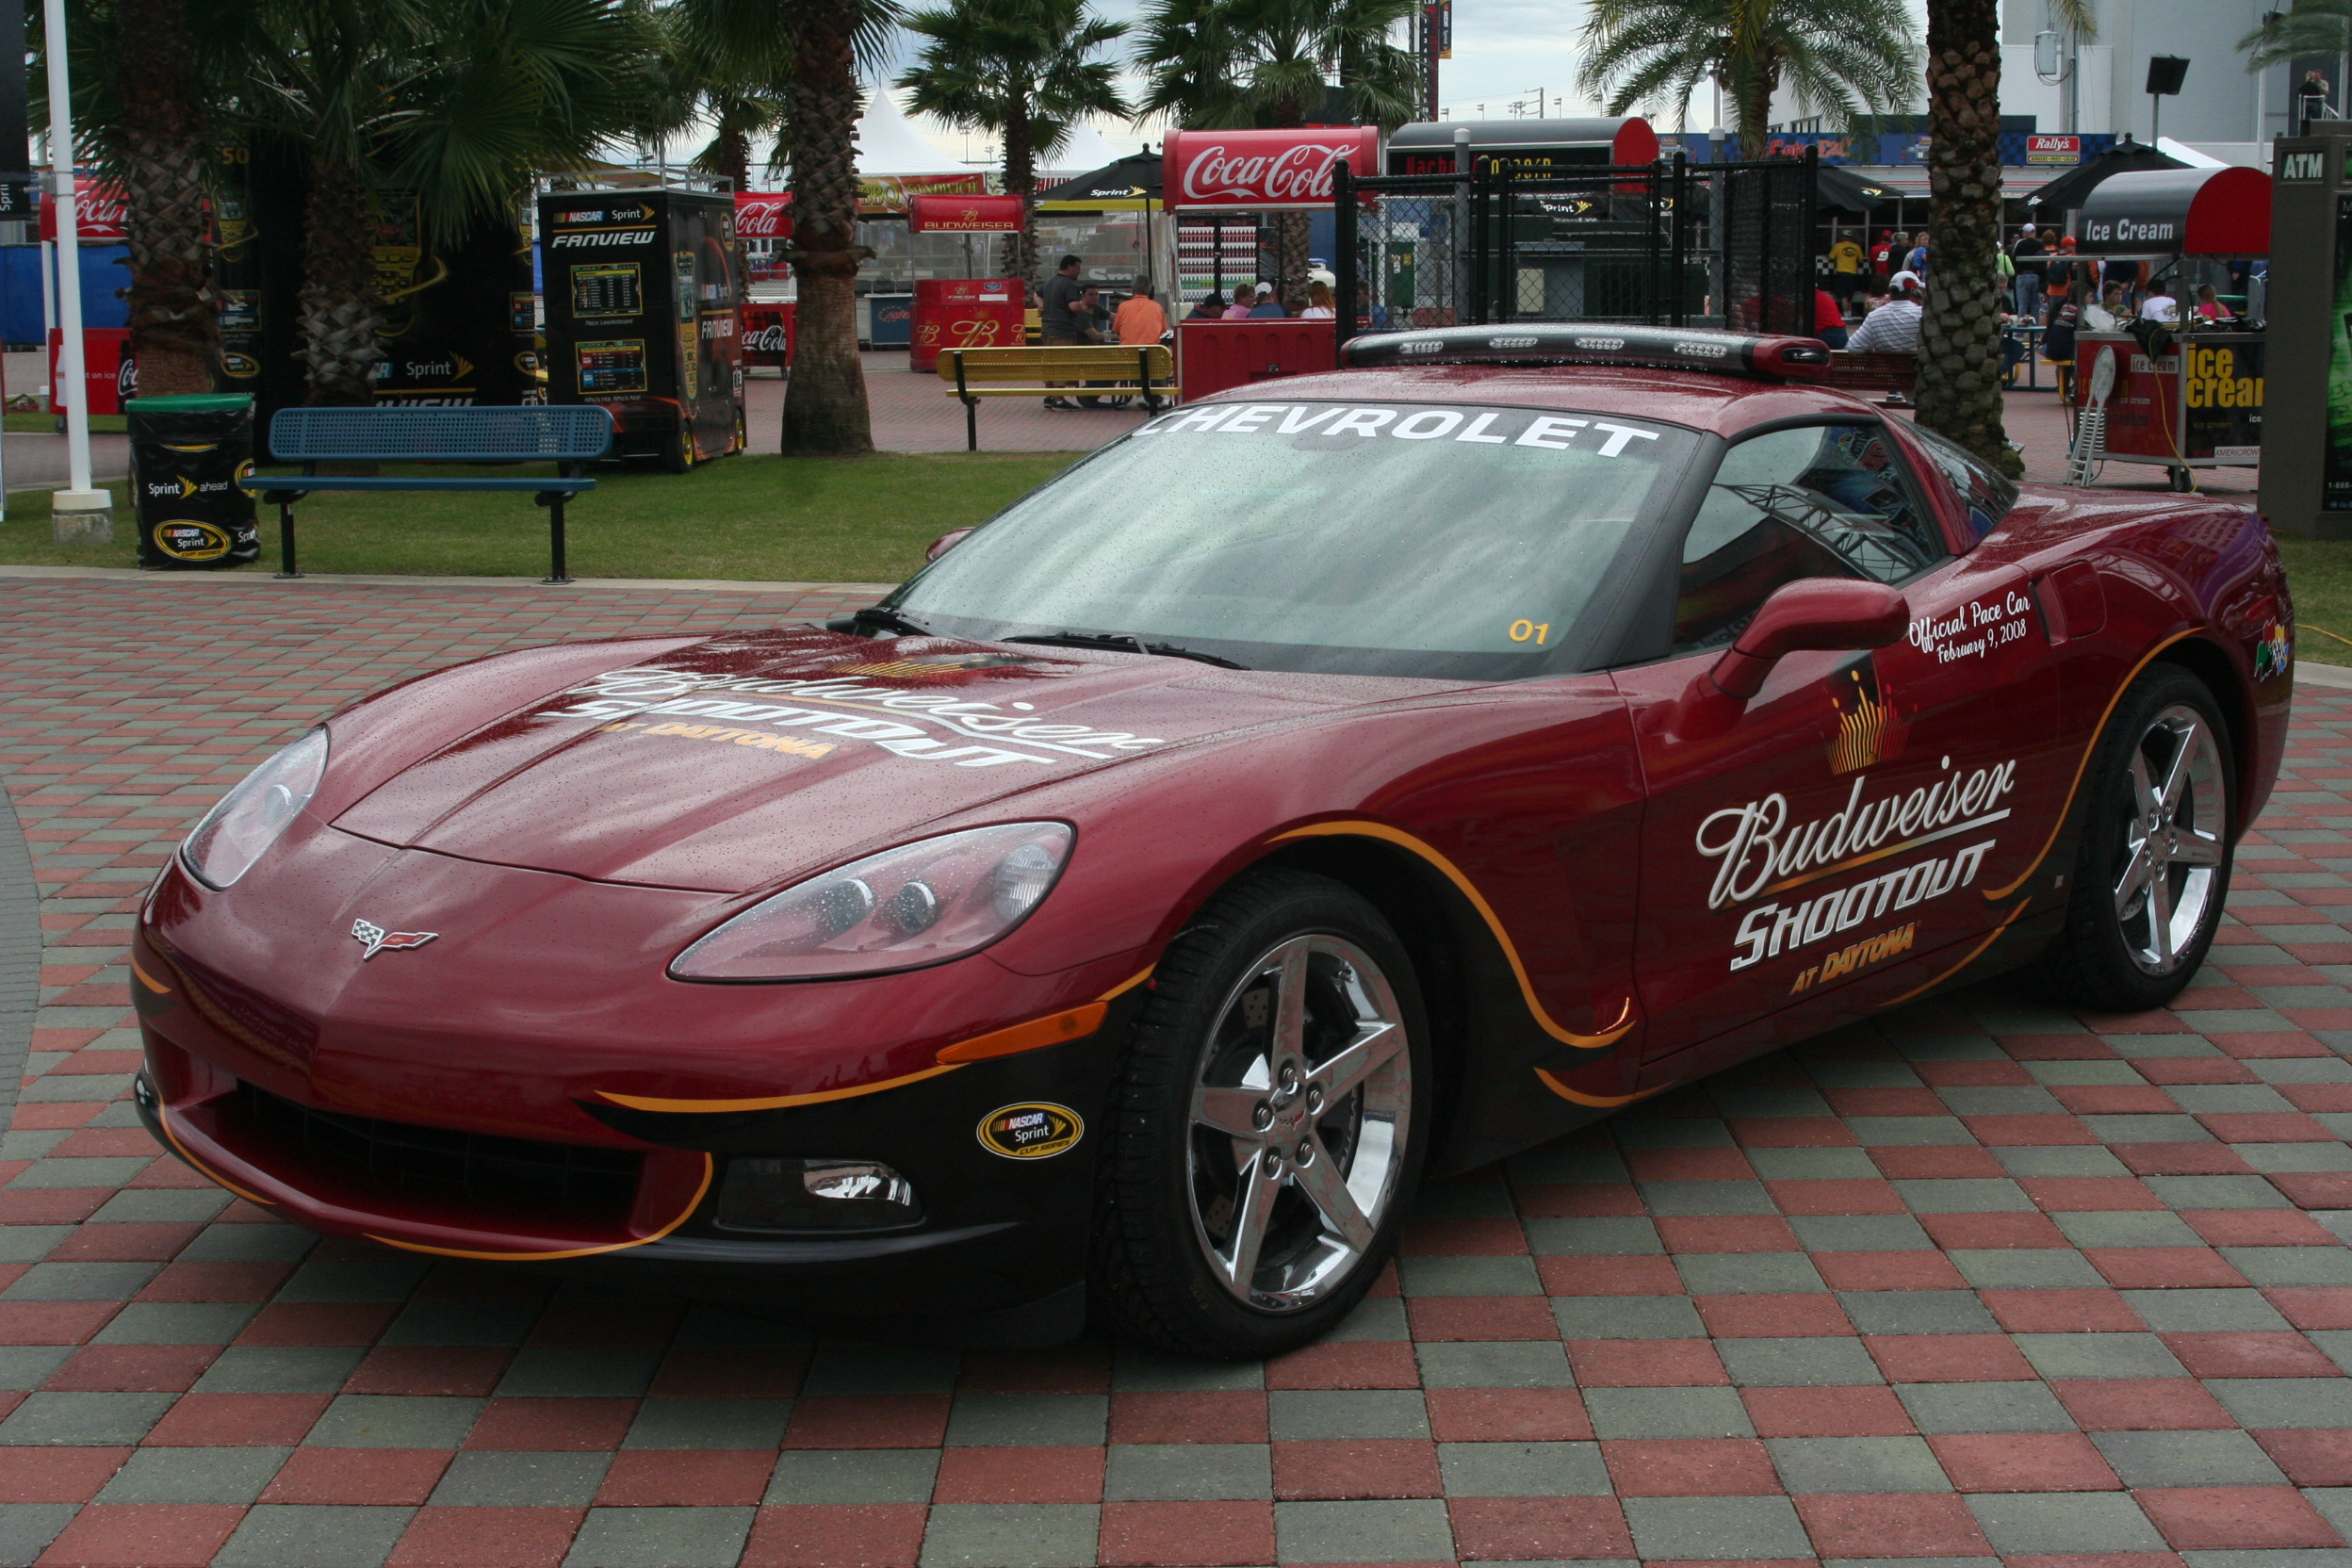 File:2008 BUDWEISER SHOOTOUT Chevy Corvette Pace Car.jpg - Wikipedia ...